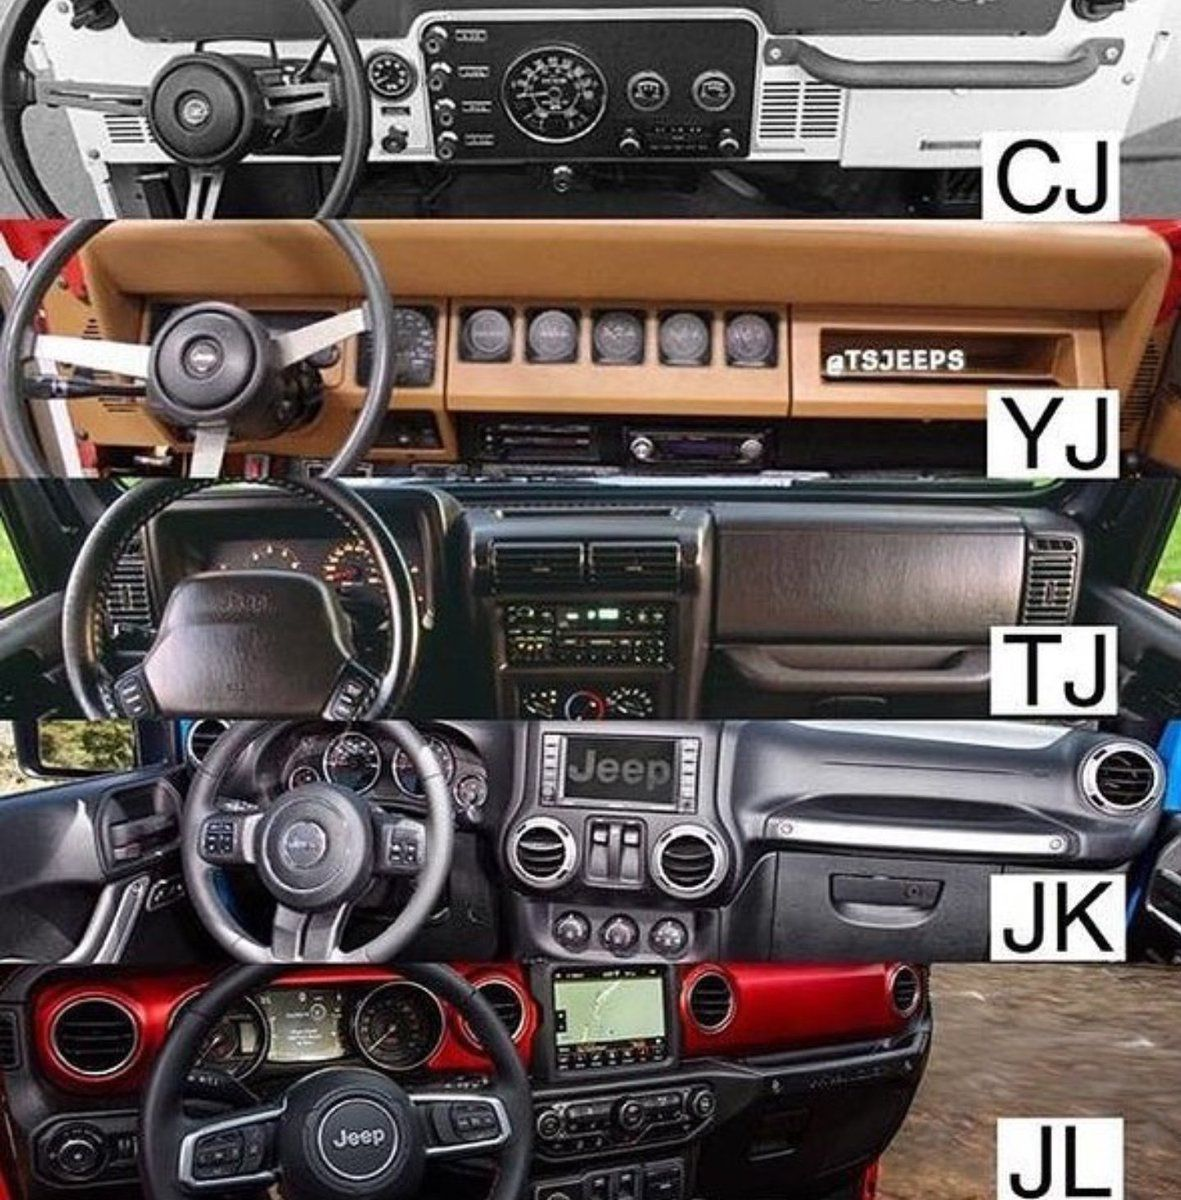 Pin By Robin Simmons On Jeep In 2020 Jeep Yj Jeep Jeep Jku